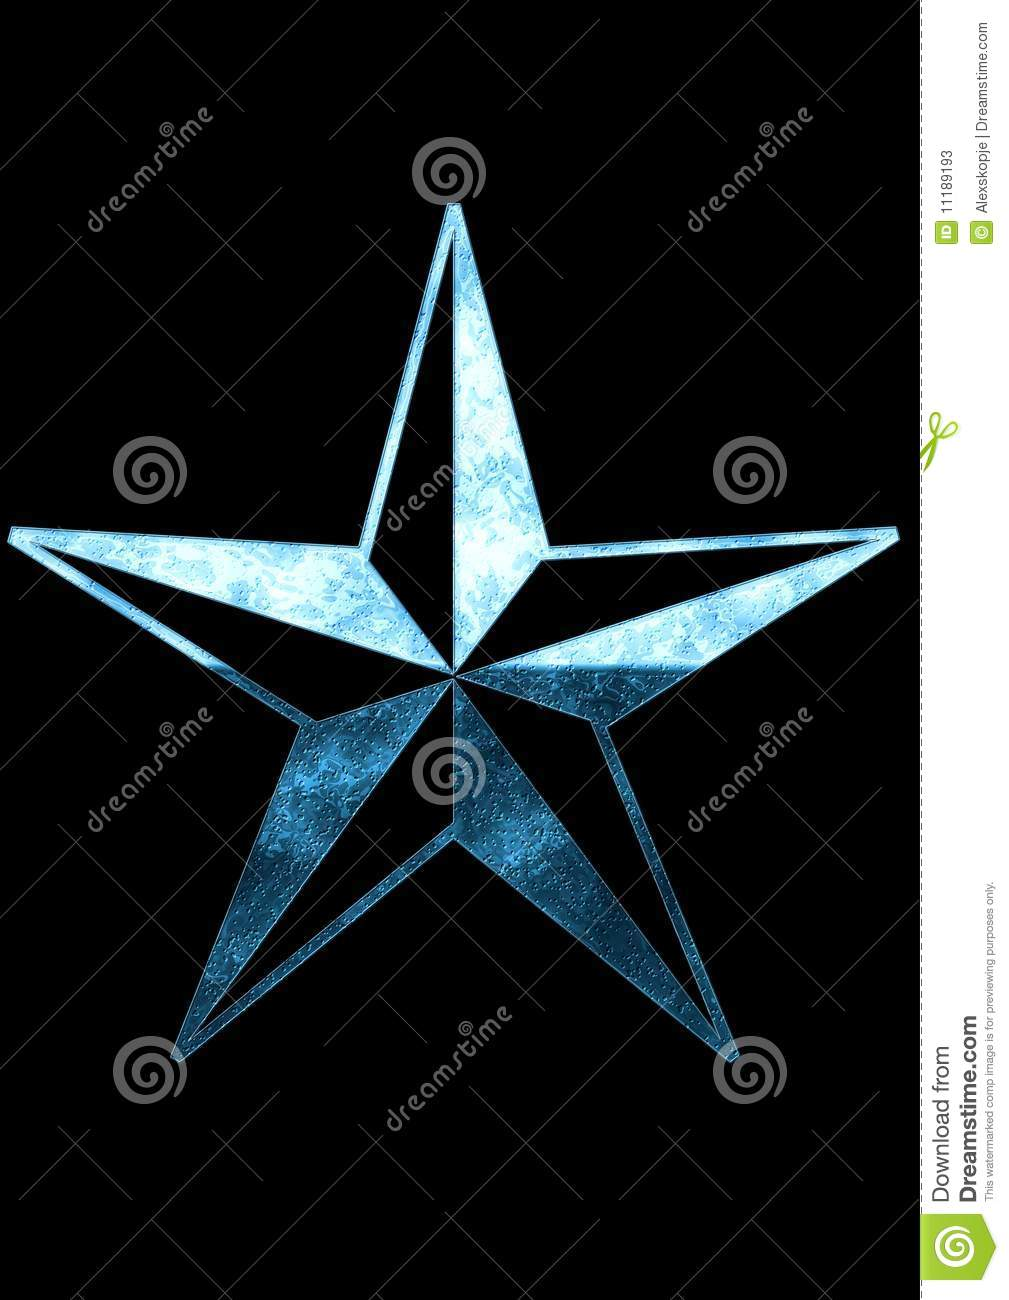 Black And Blue Stars Backgrounds Blue star on black background